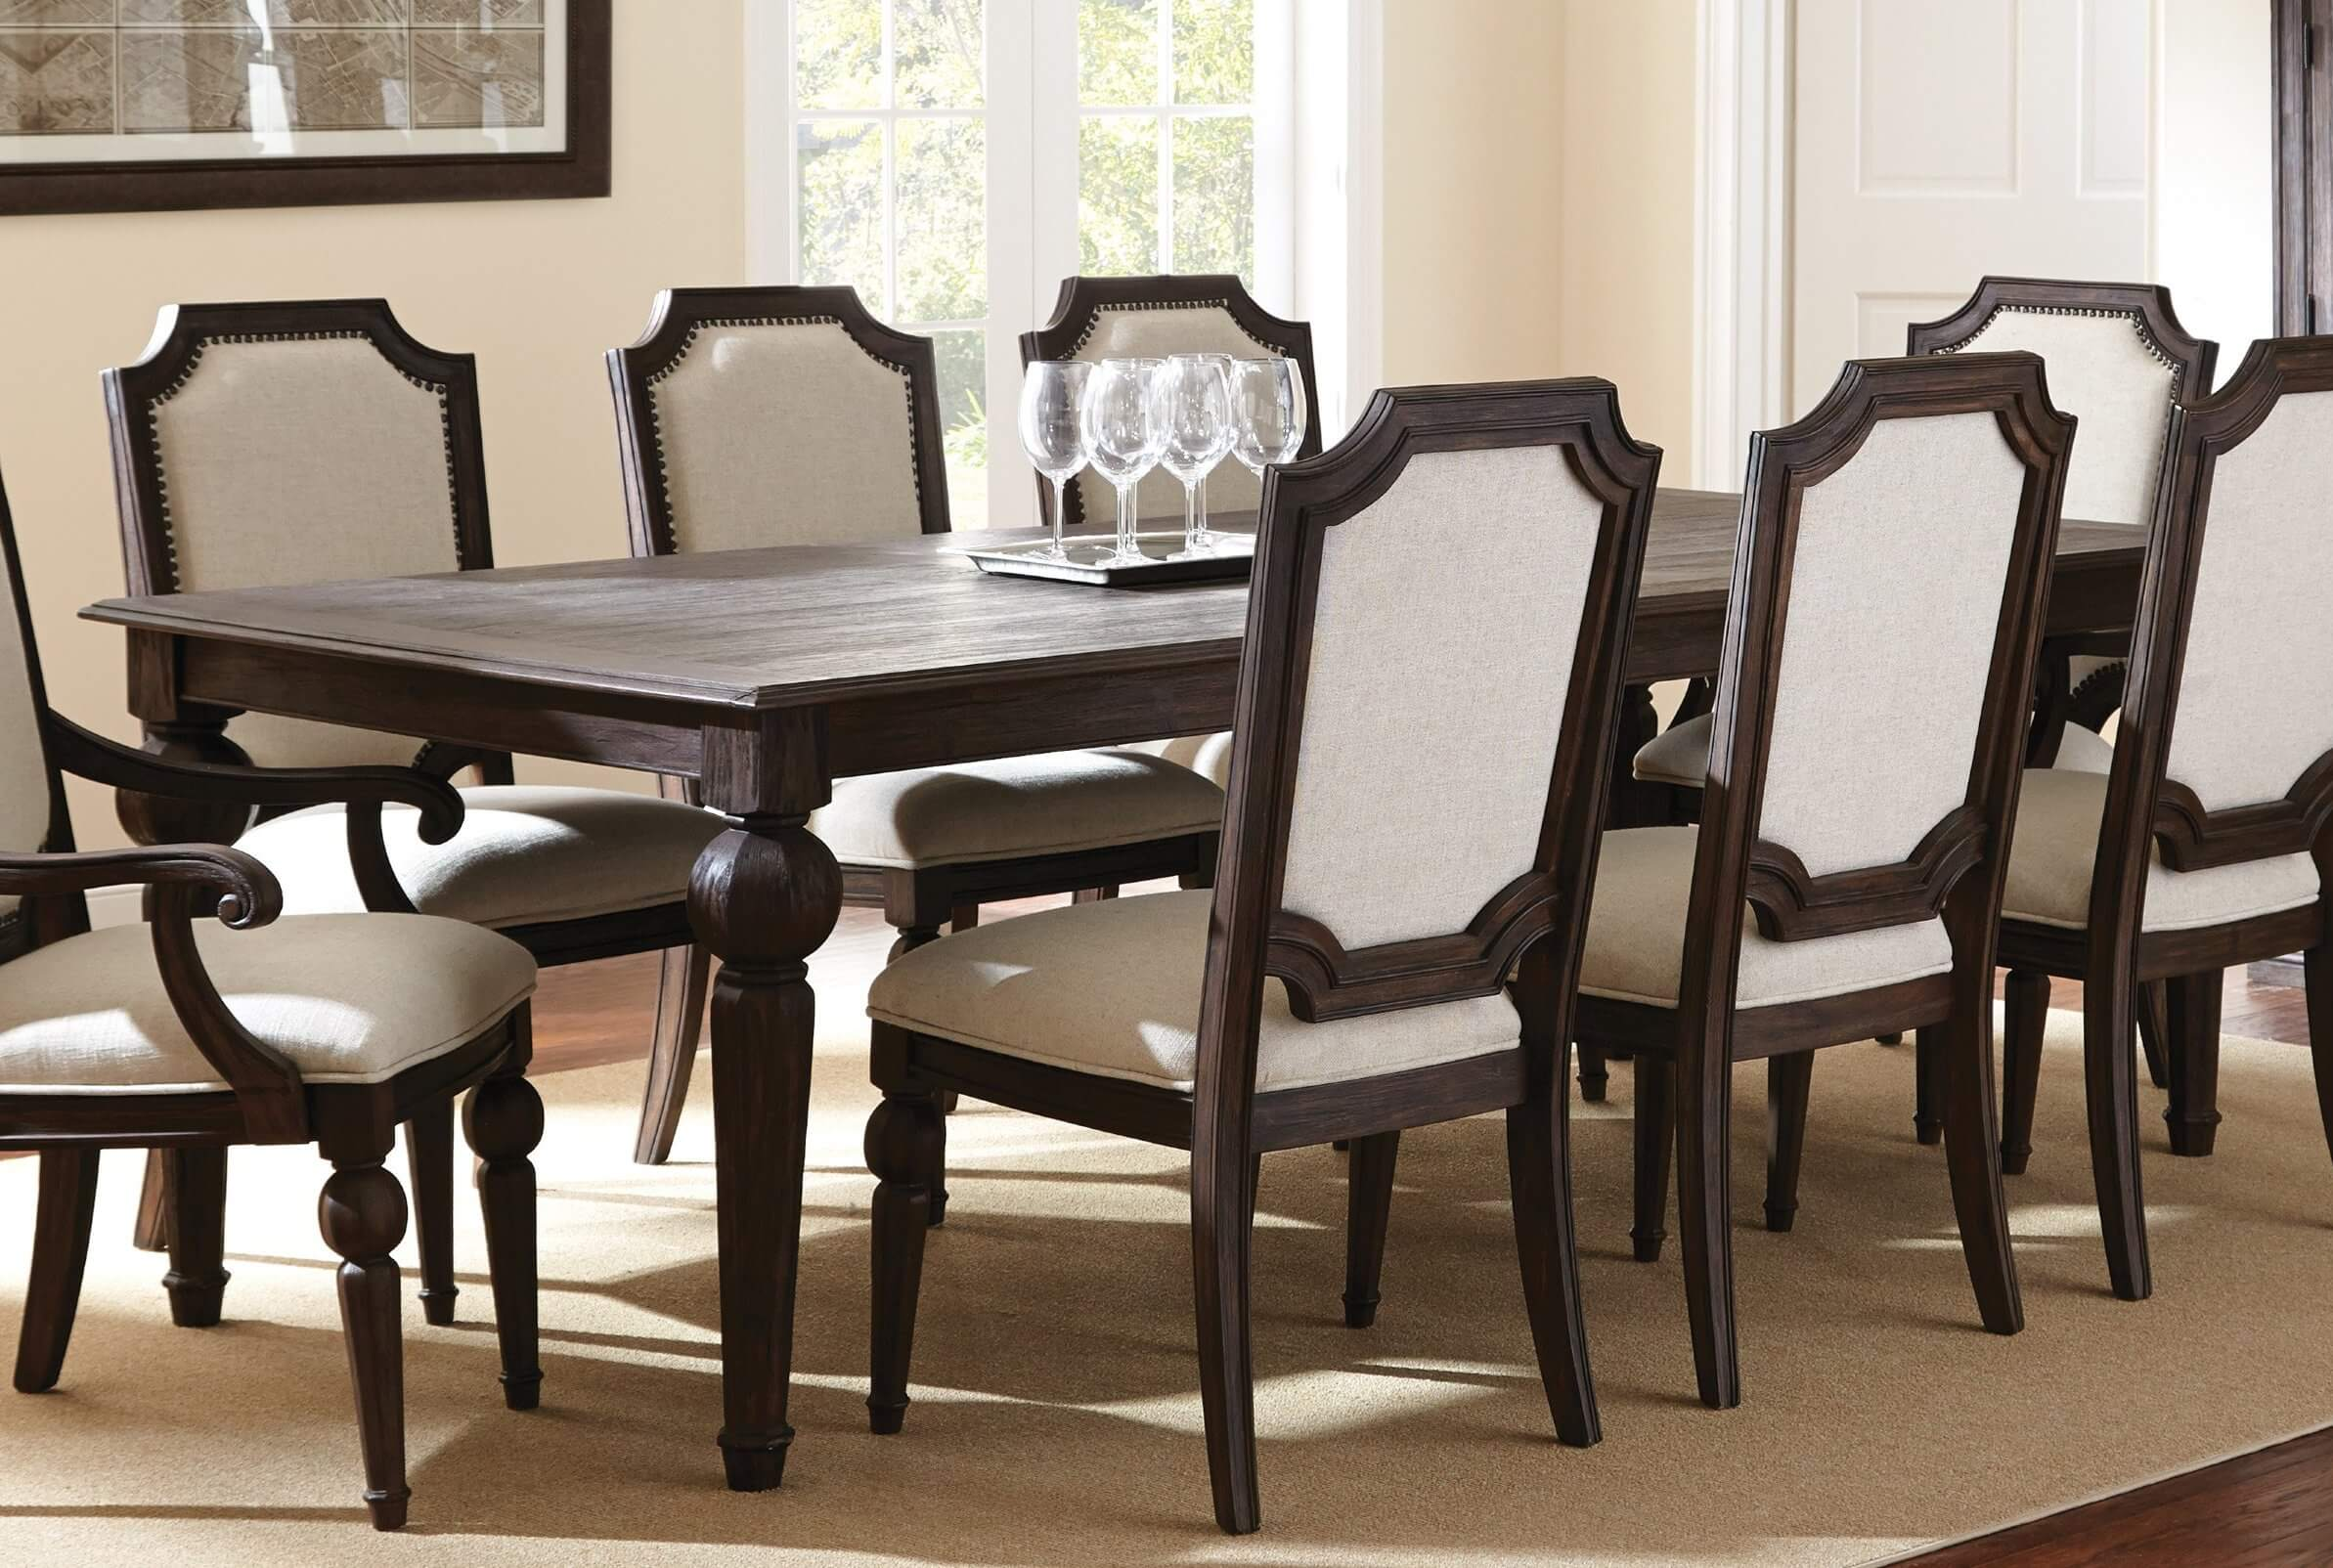 29 types of dining room tables extensive buying guide for Traditional dining table with bench